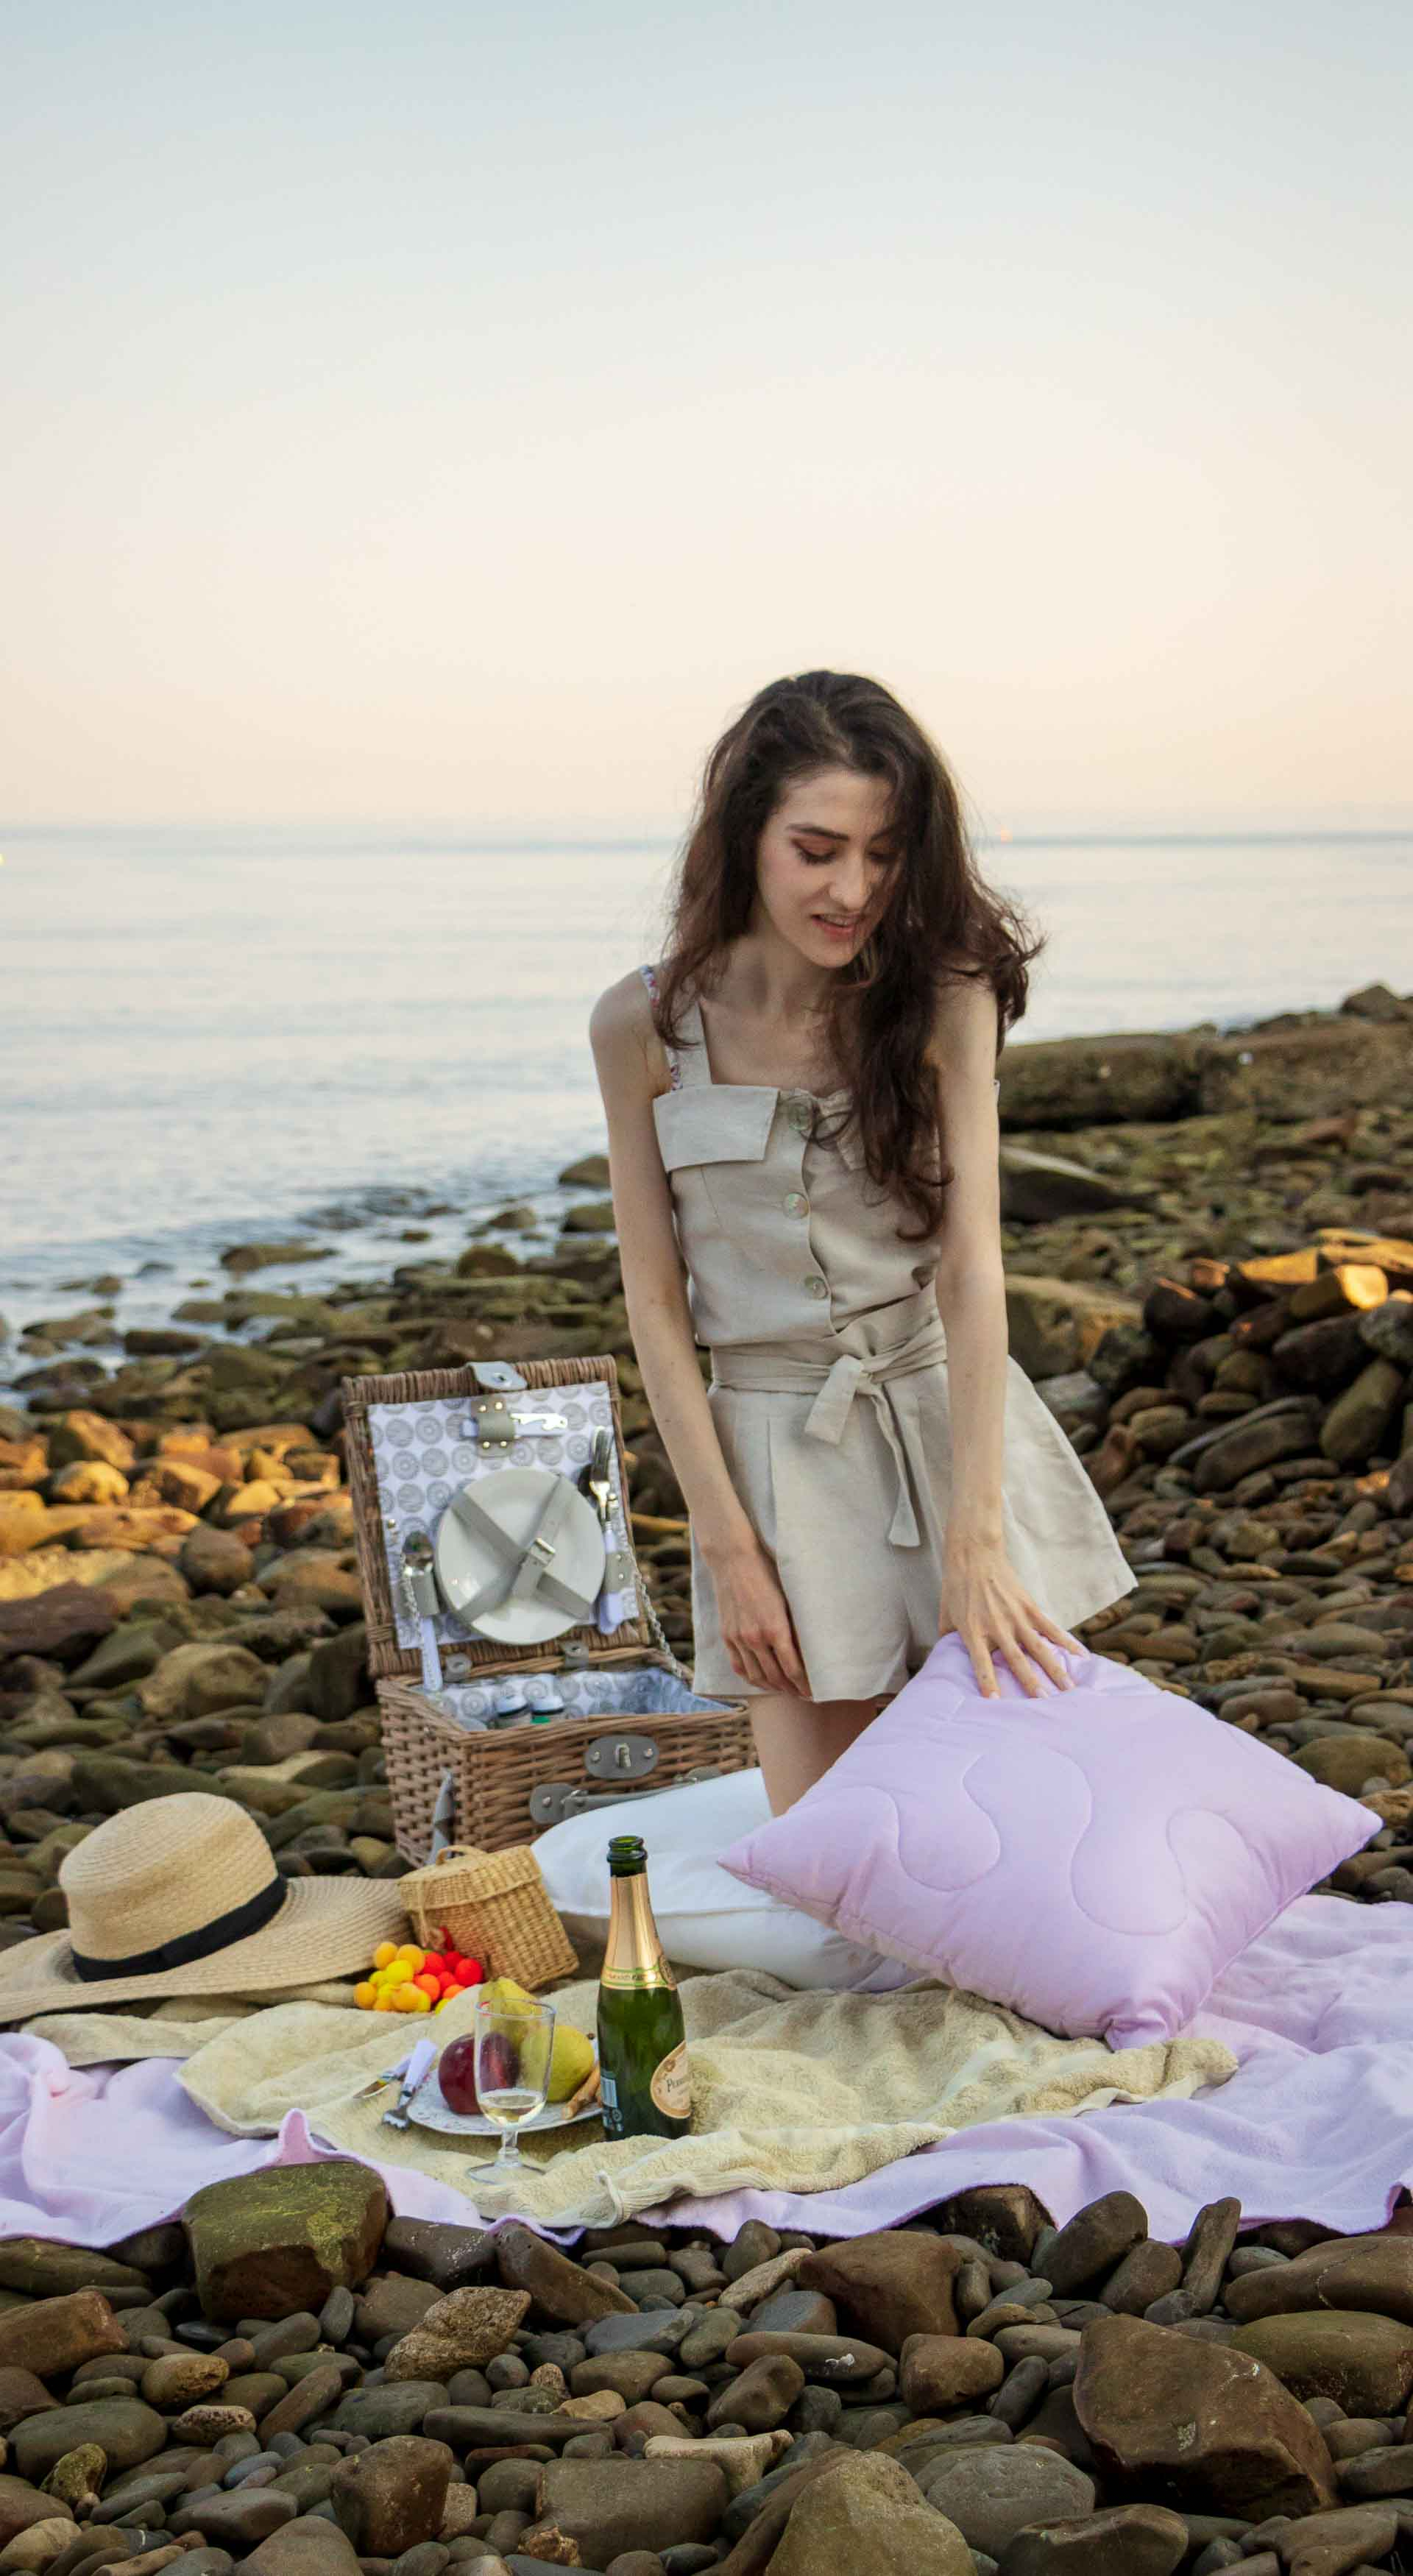 Slovenian Fashion Blogger Veronika Lipar of Brunette from Wall dressed in beige linen crop top, paper bag linen shorts, luxe pool slides, large straw hat, Nannacay basket bag while playing with pillows at beach picnic